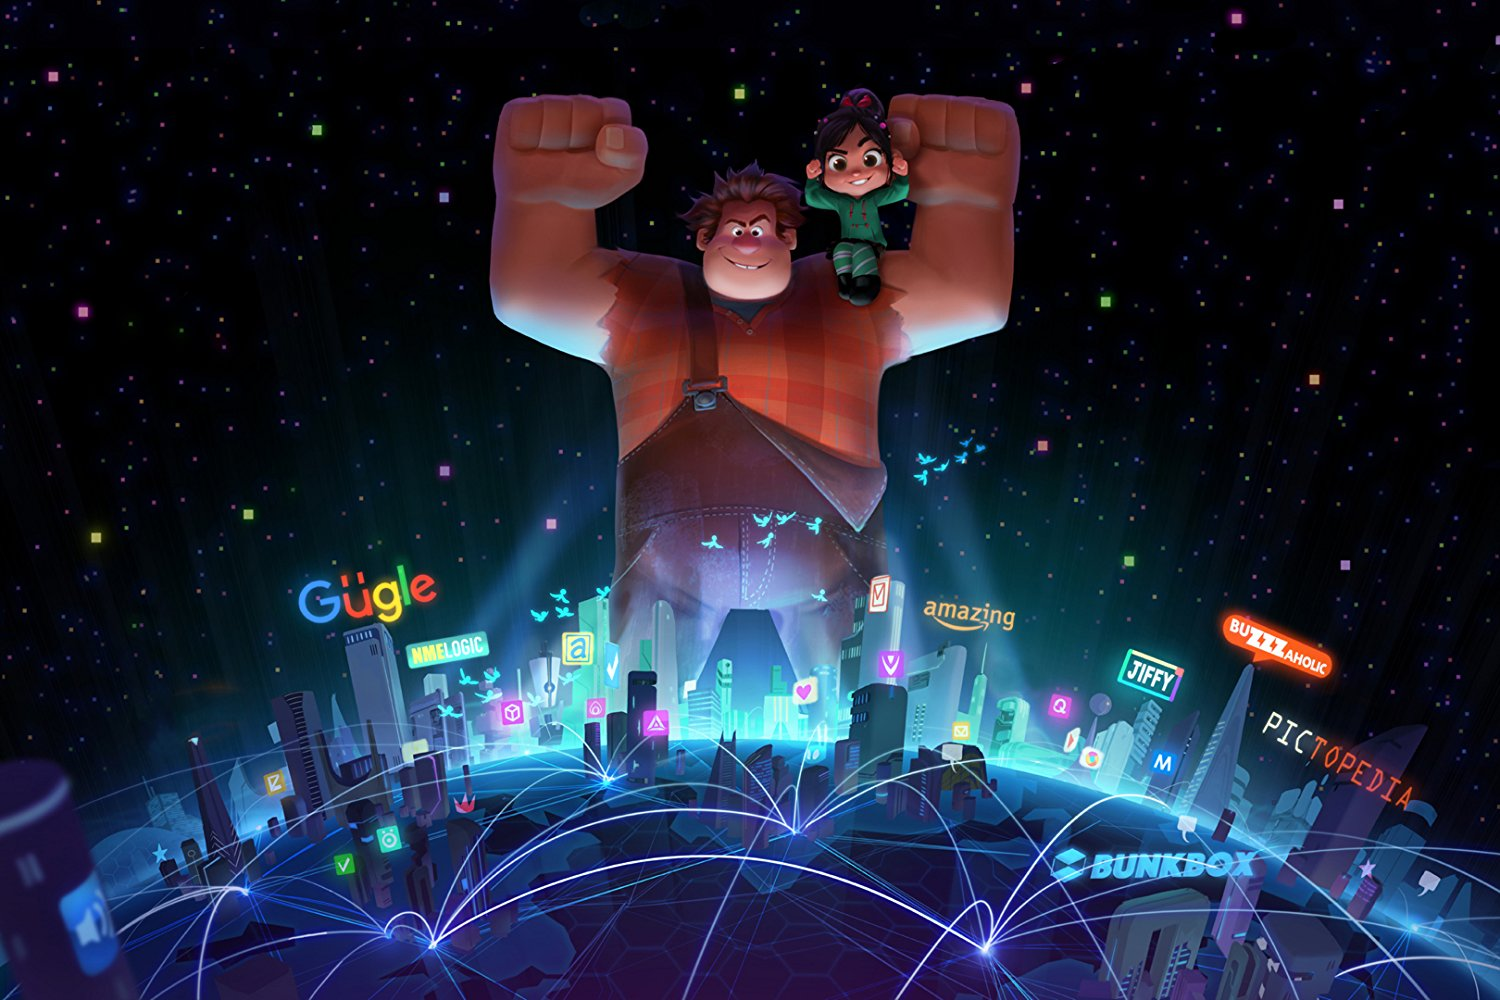 Guarda il trailer di Ralph Spaccattutto 2 Ralph Breaks the Internet | Collater.al 2